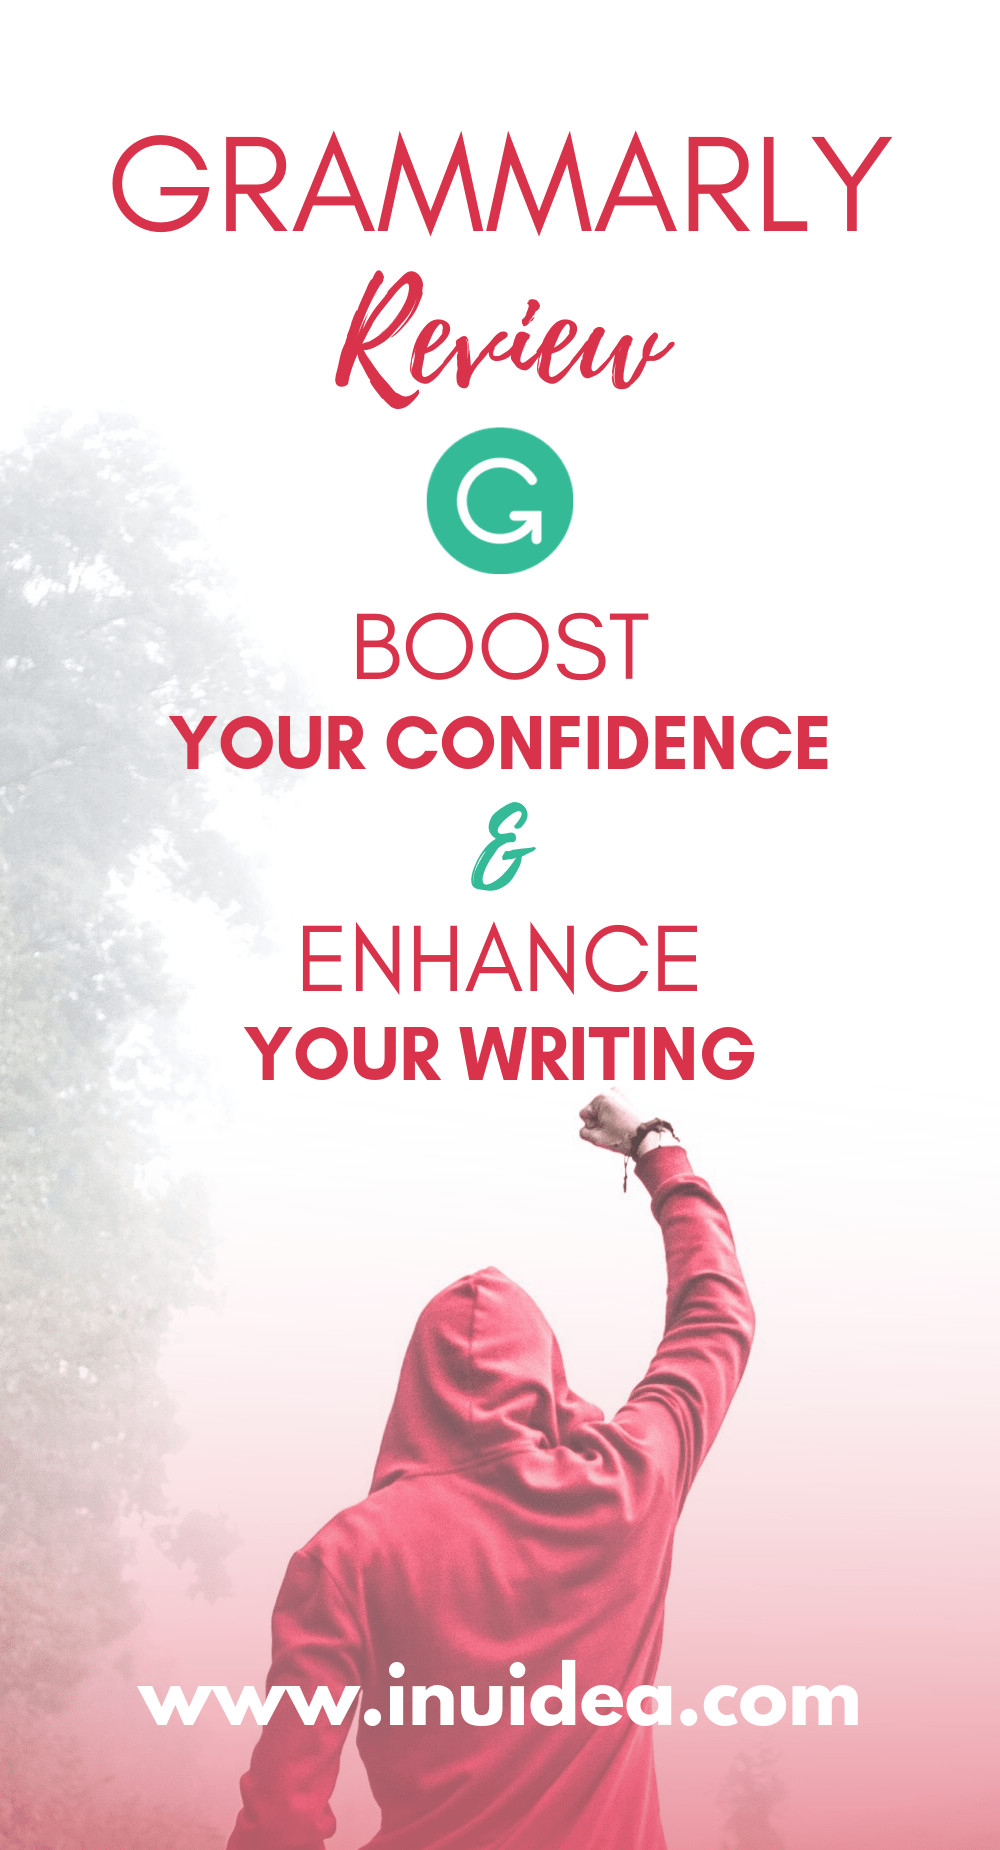 Grammarly Proofreading Software Offers Today 2020